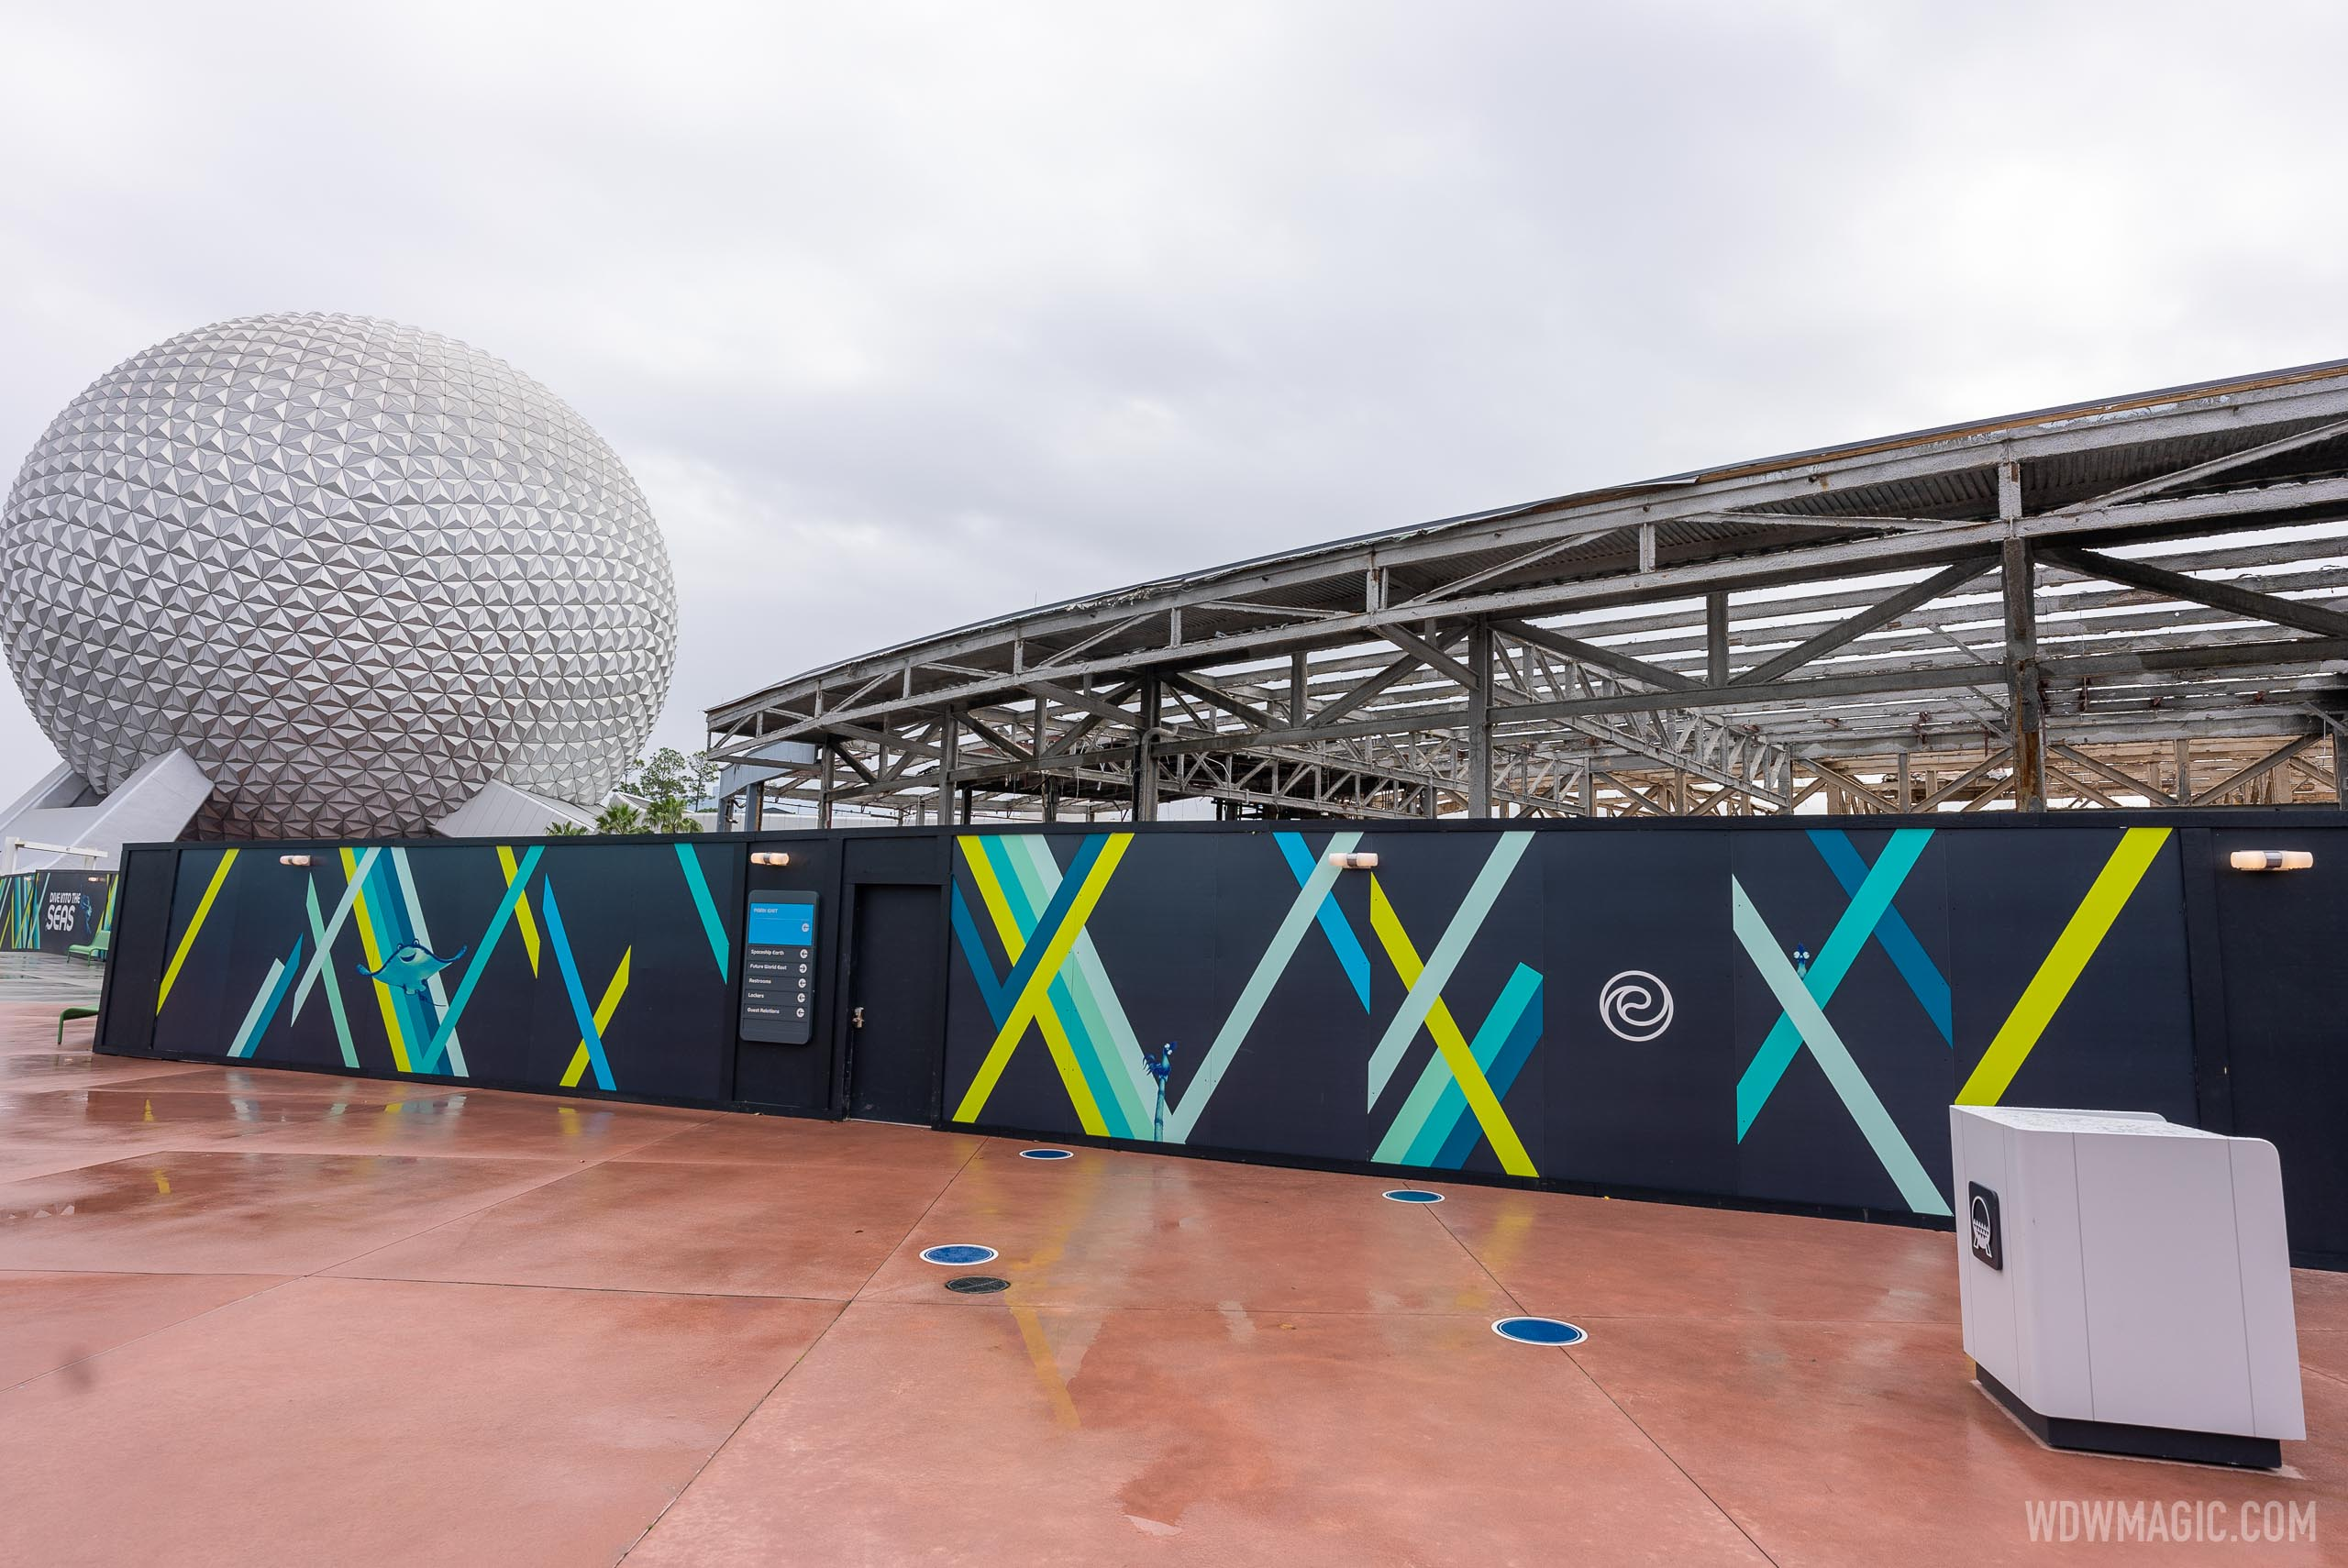 EPCOT Innoventions West demolition - February 17 2021